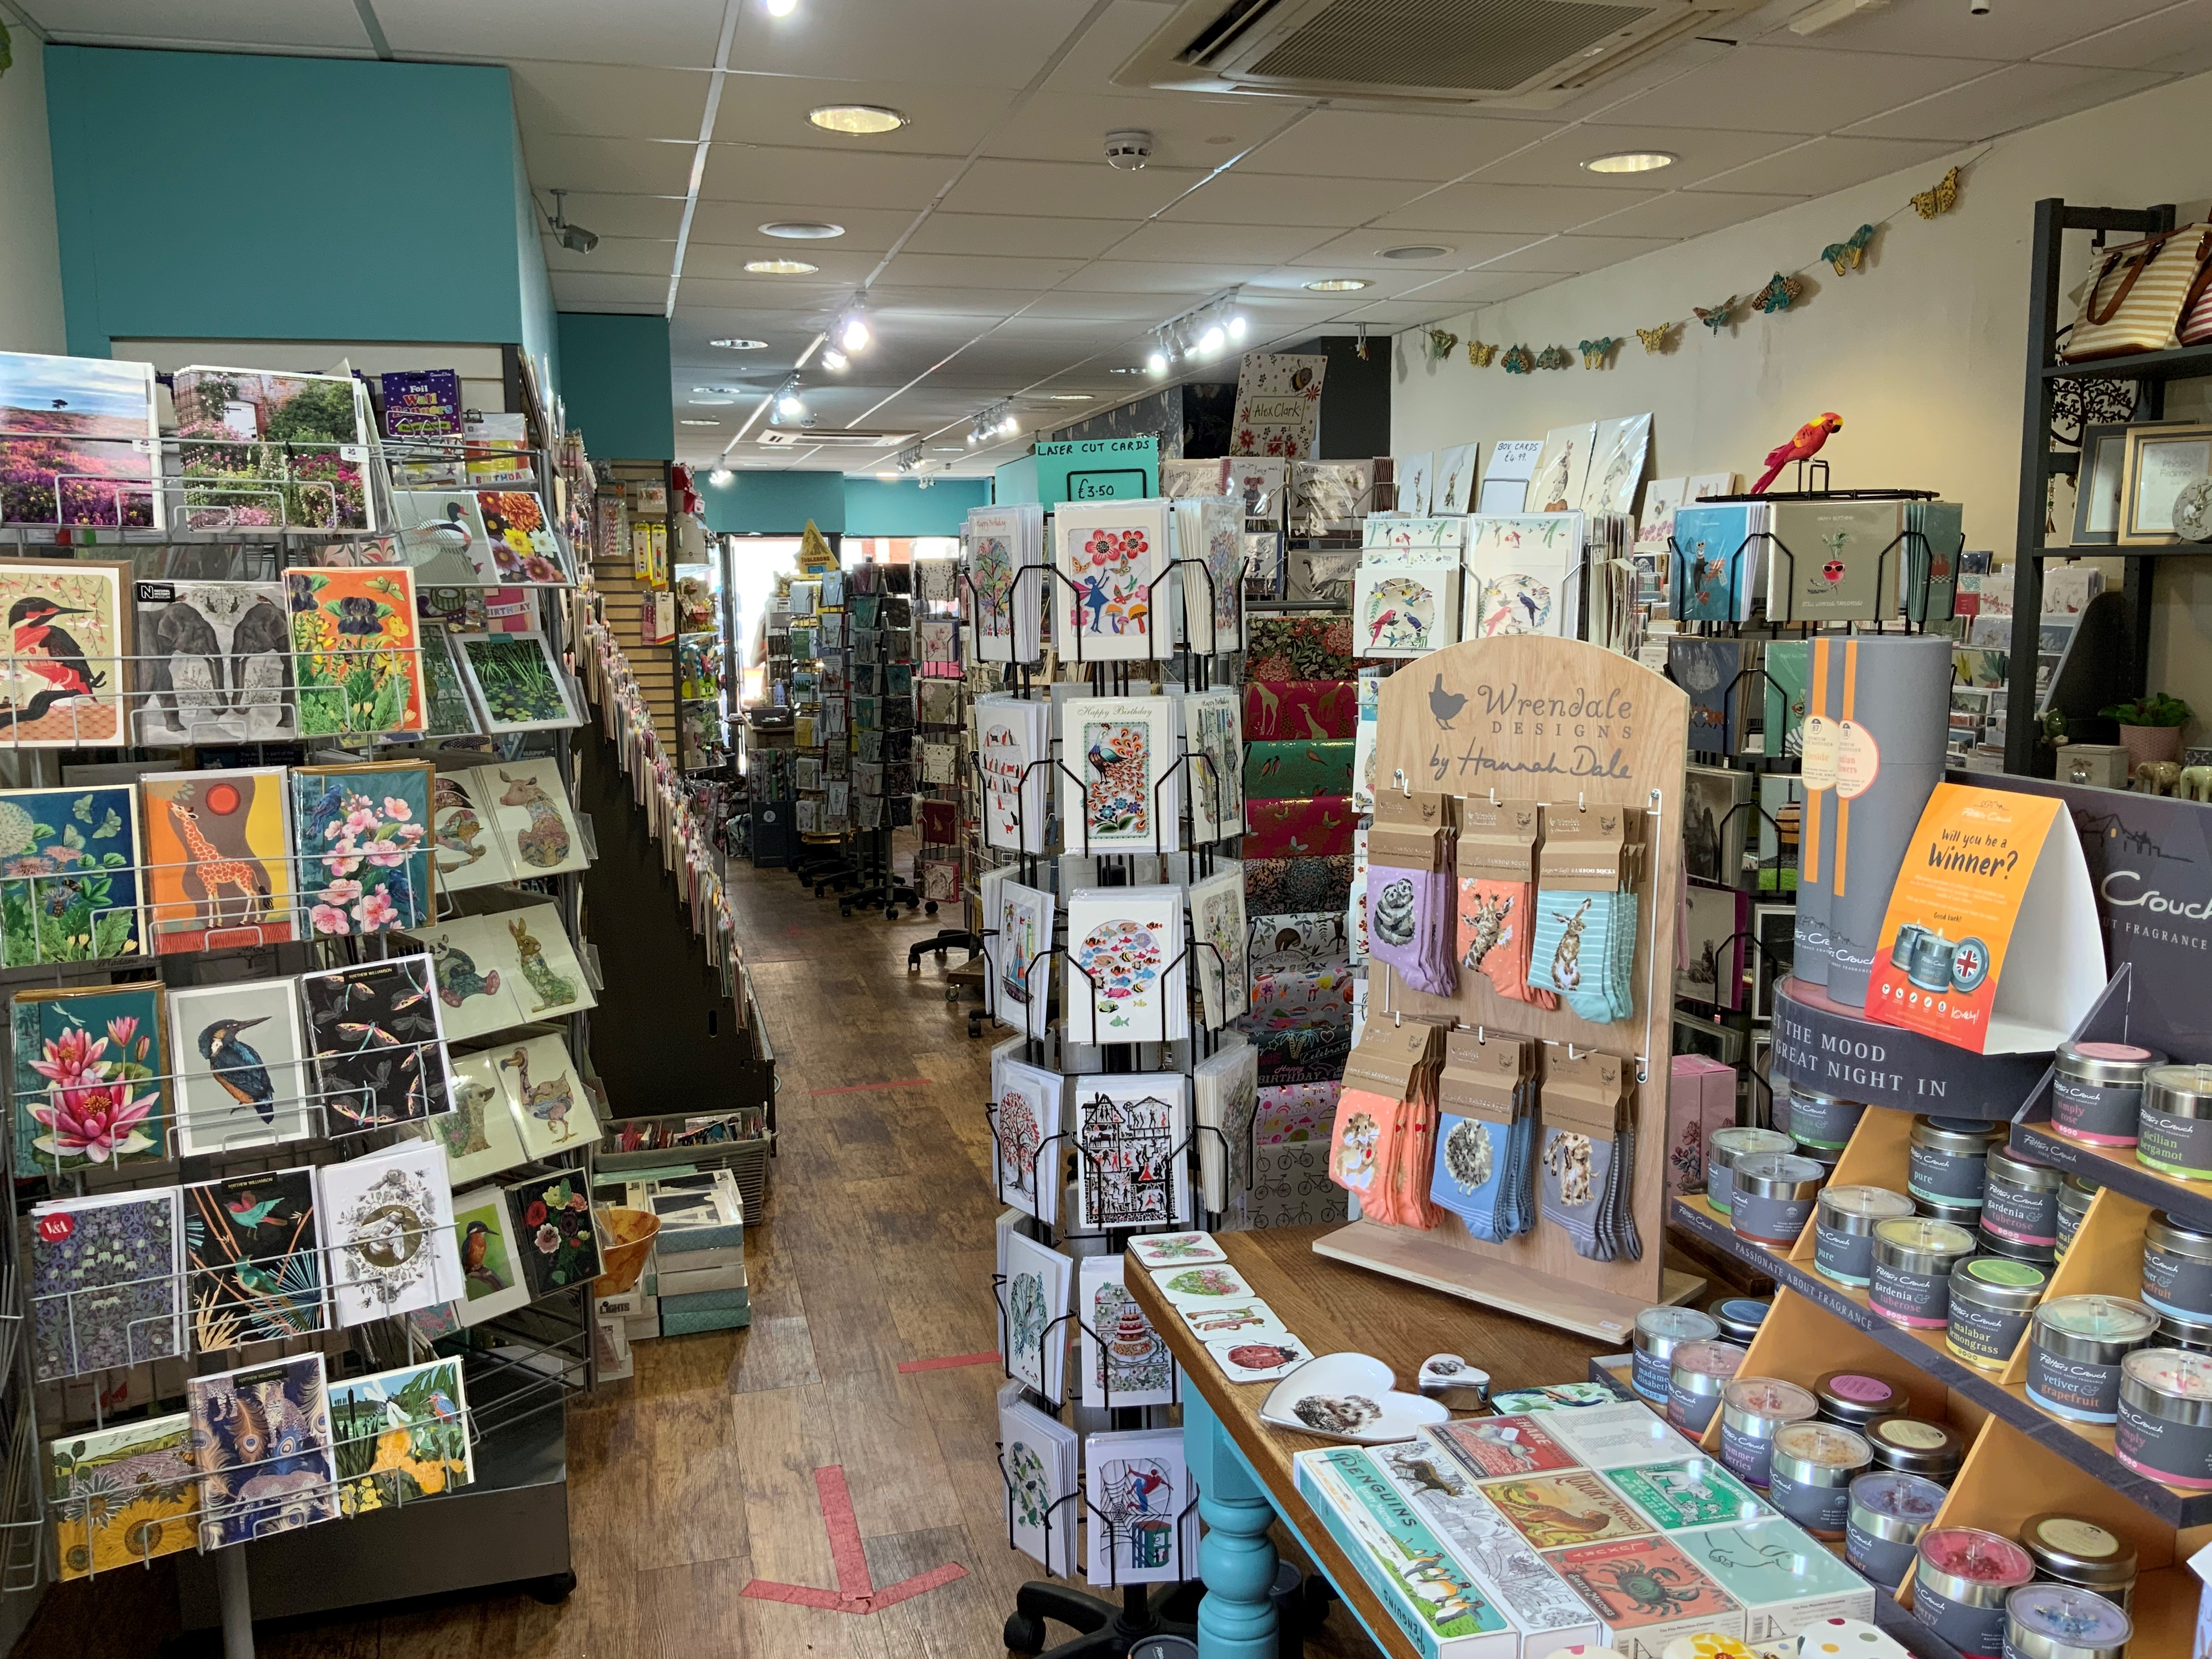 Above: Inside Kingfisher Cards & Gifts.